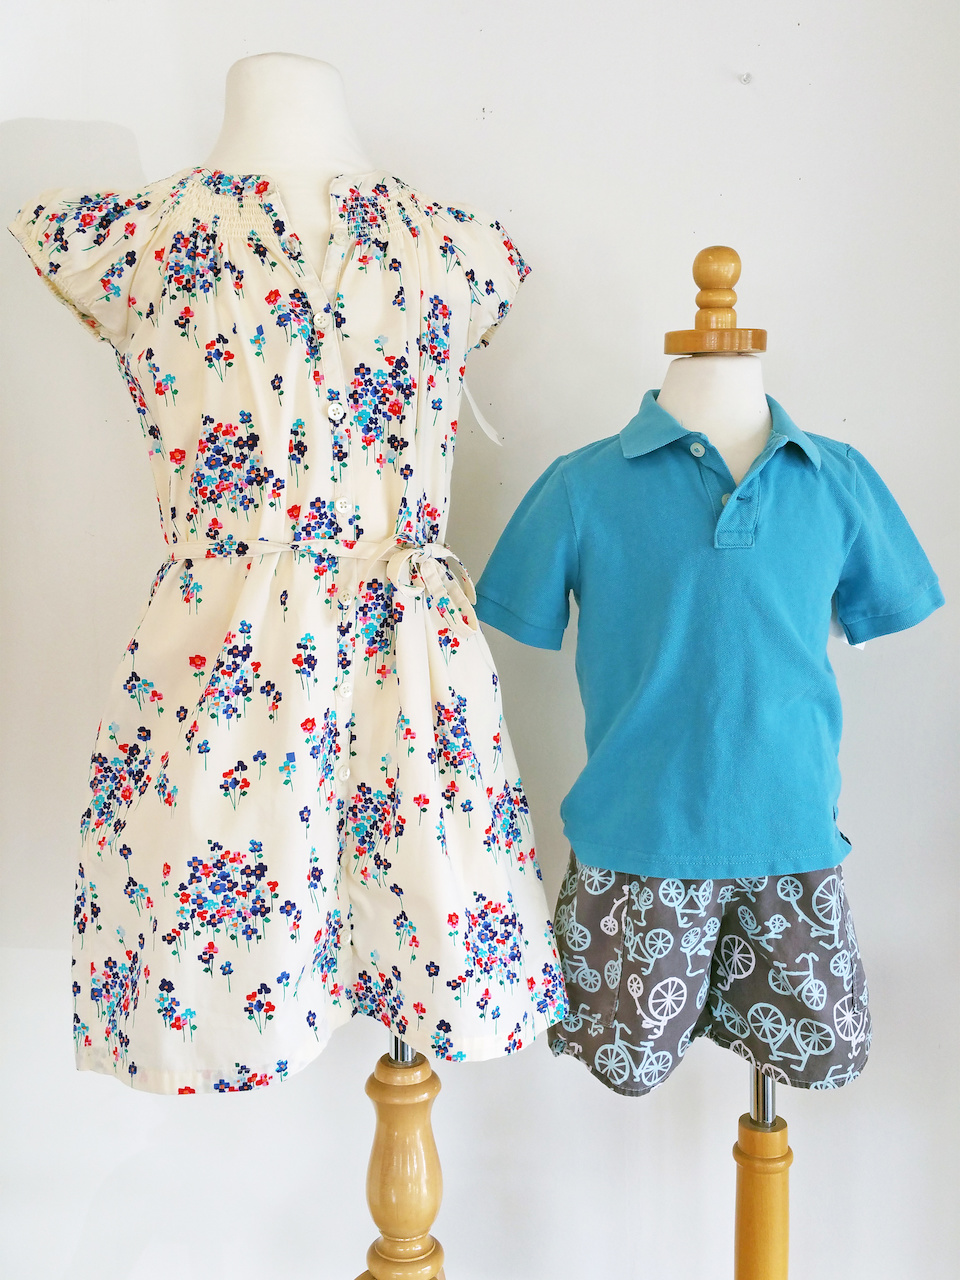 Floral dress, $11.97; Crewcuts polo shirt, $10.47 and bicycle shorts, $7.77, at Little Lavender